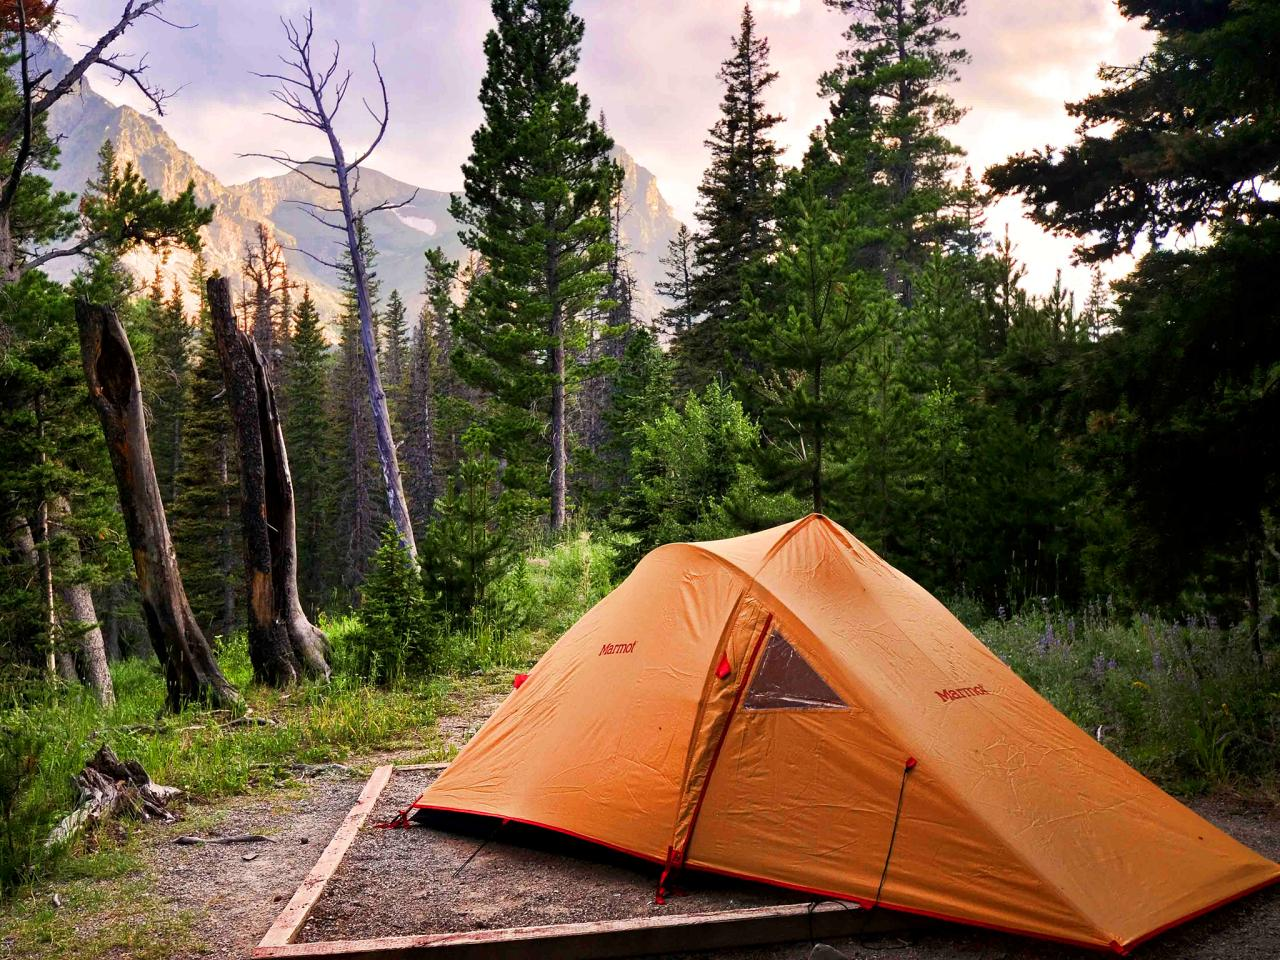 Nice Images Collection: Camping Desktop Wallpapers